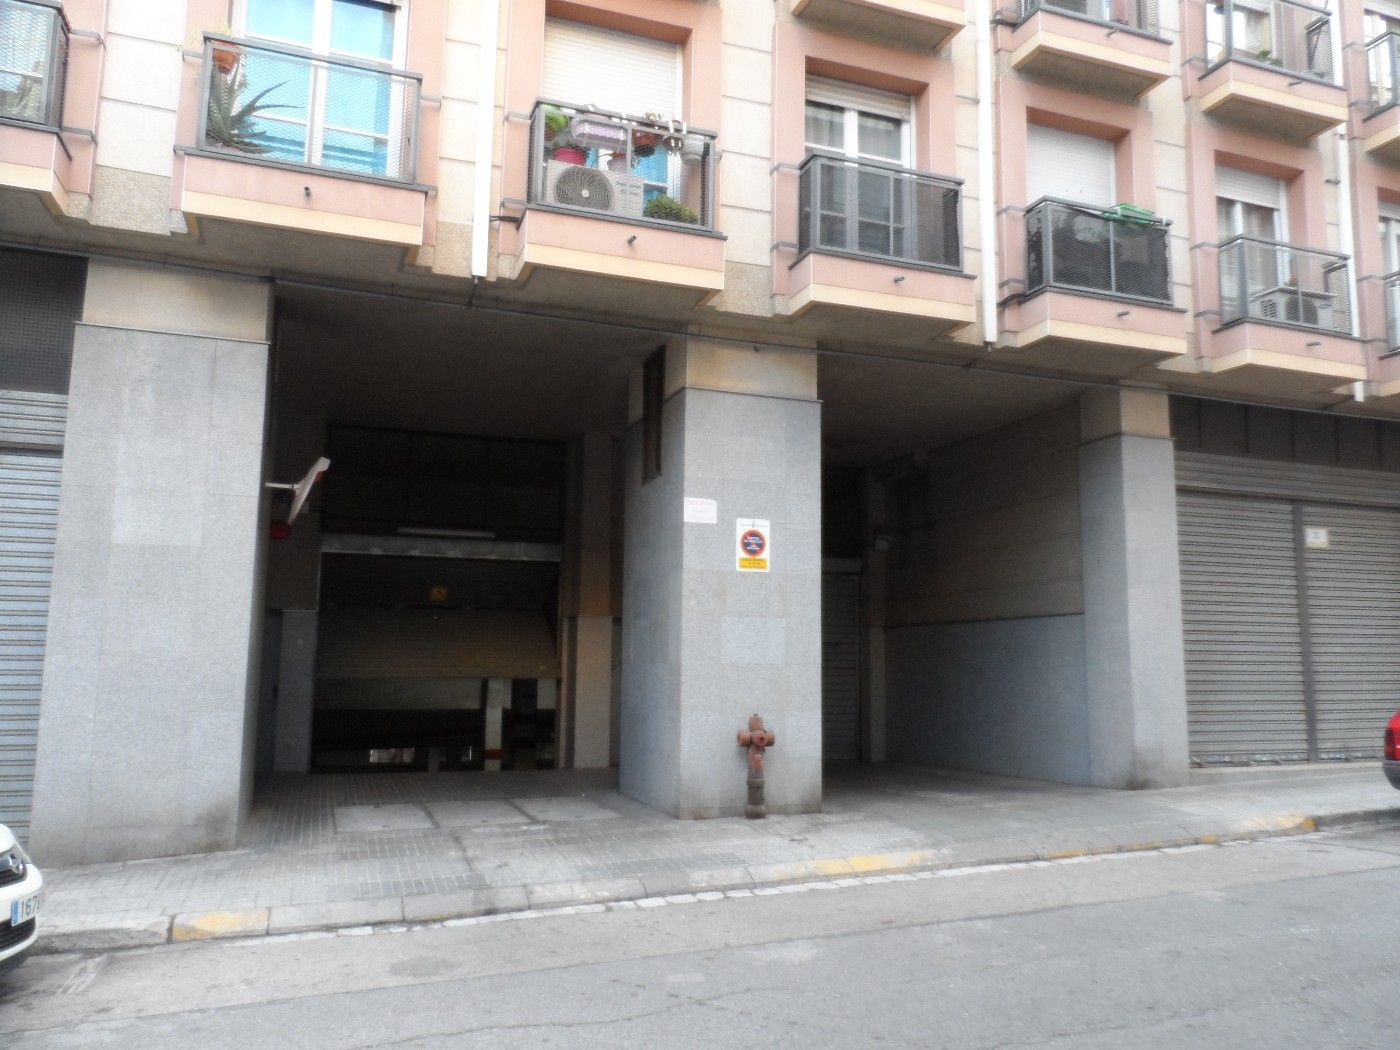 Alquiler Parking coche en Carrer santiago rusiñol, 5. Plaza parking cementiri vell